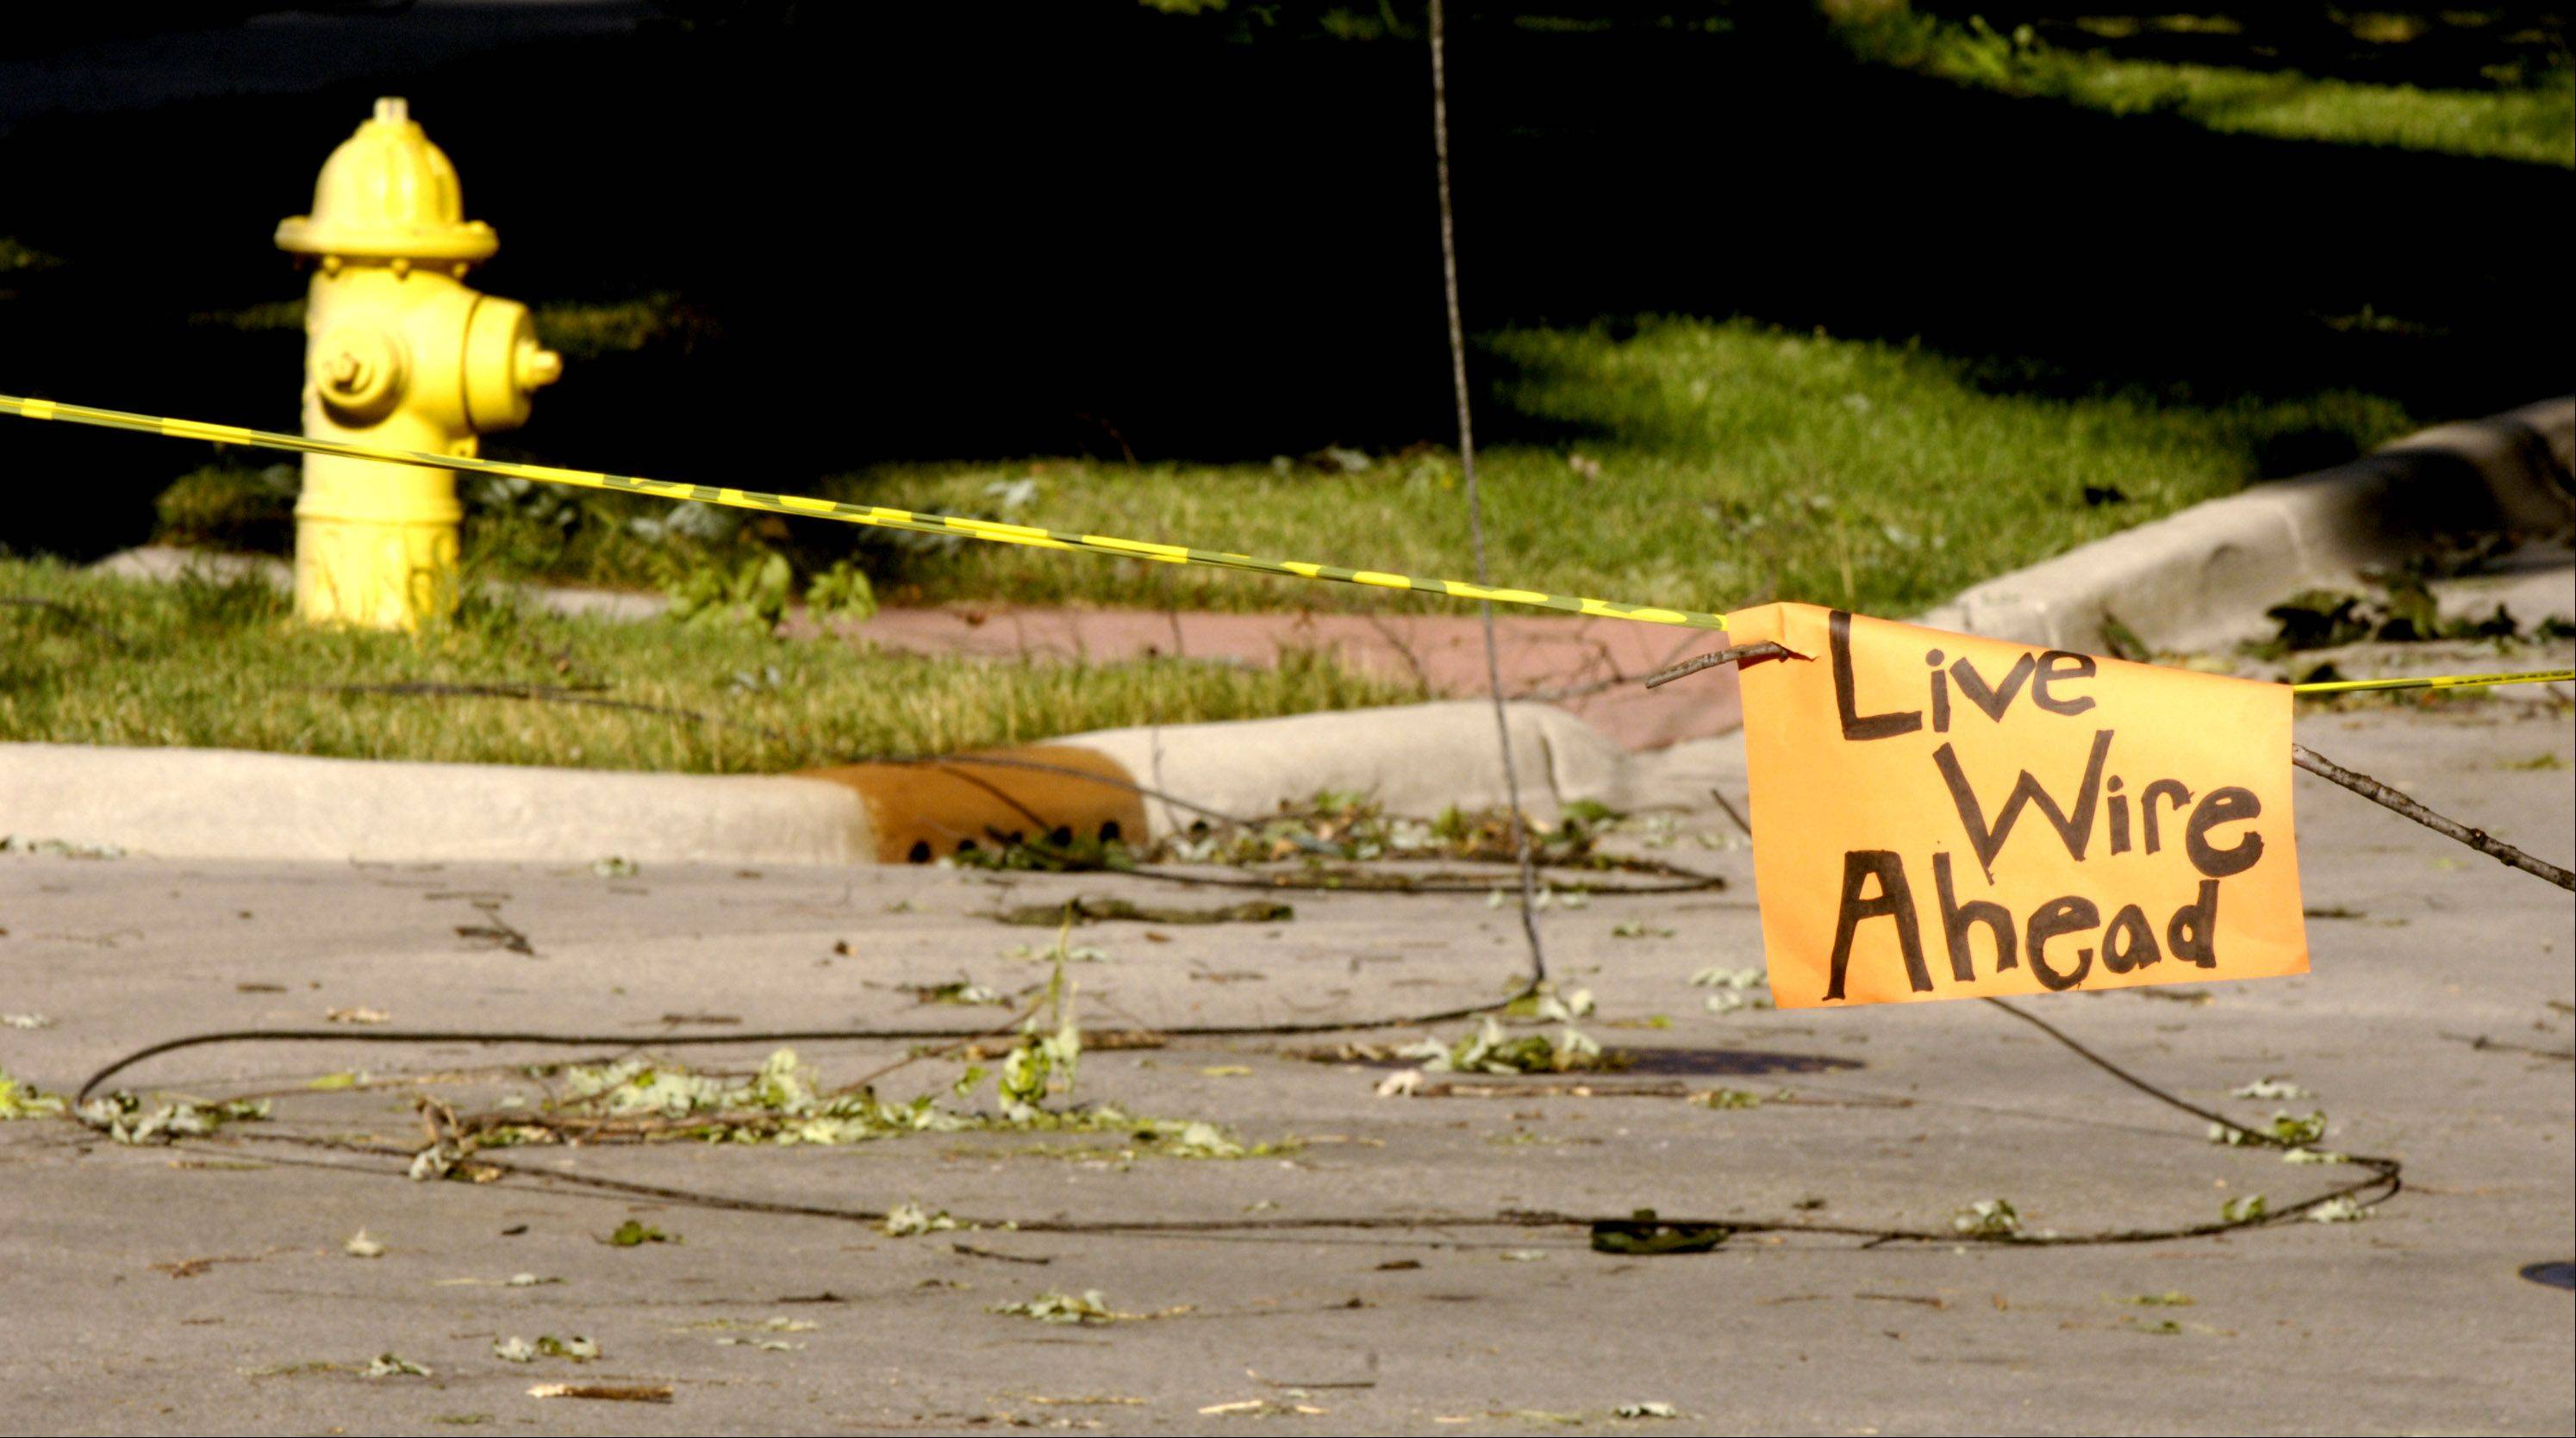 A hand made sign warns of downed wires at the intersection of Hillside and Forest Ave in Glen Ellyn. The wires are still on the ground nearly 24 hours after high winds blew through the Chicago area.